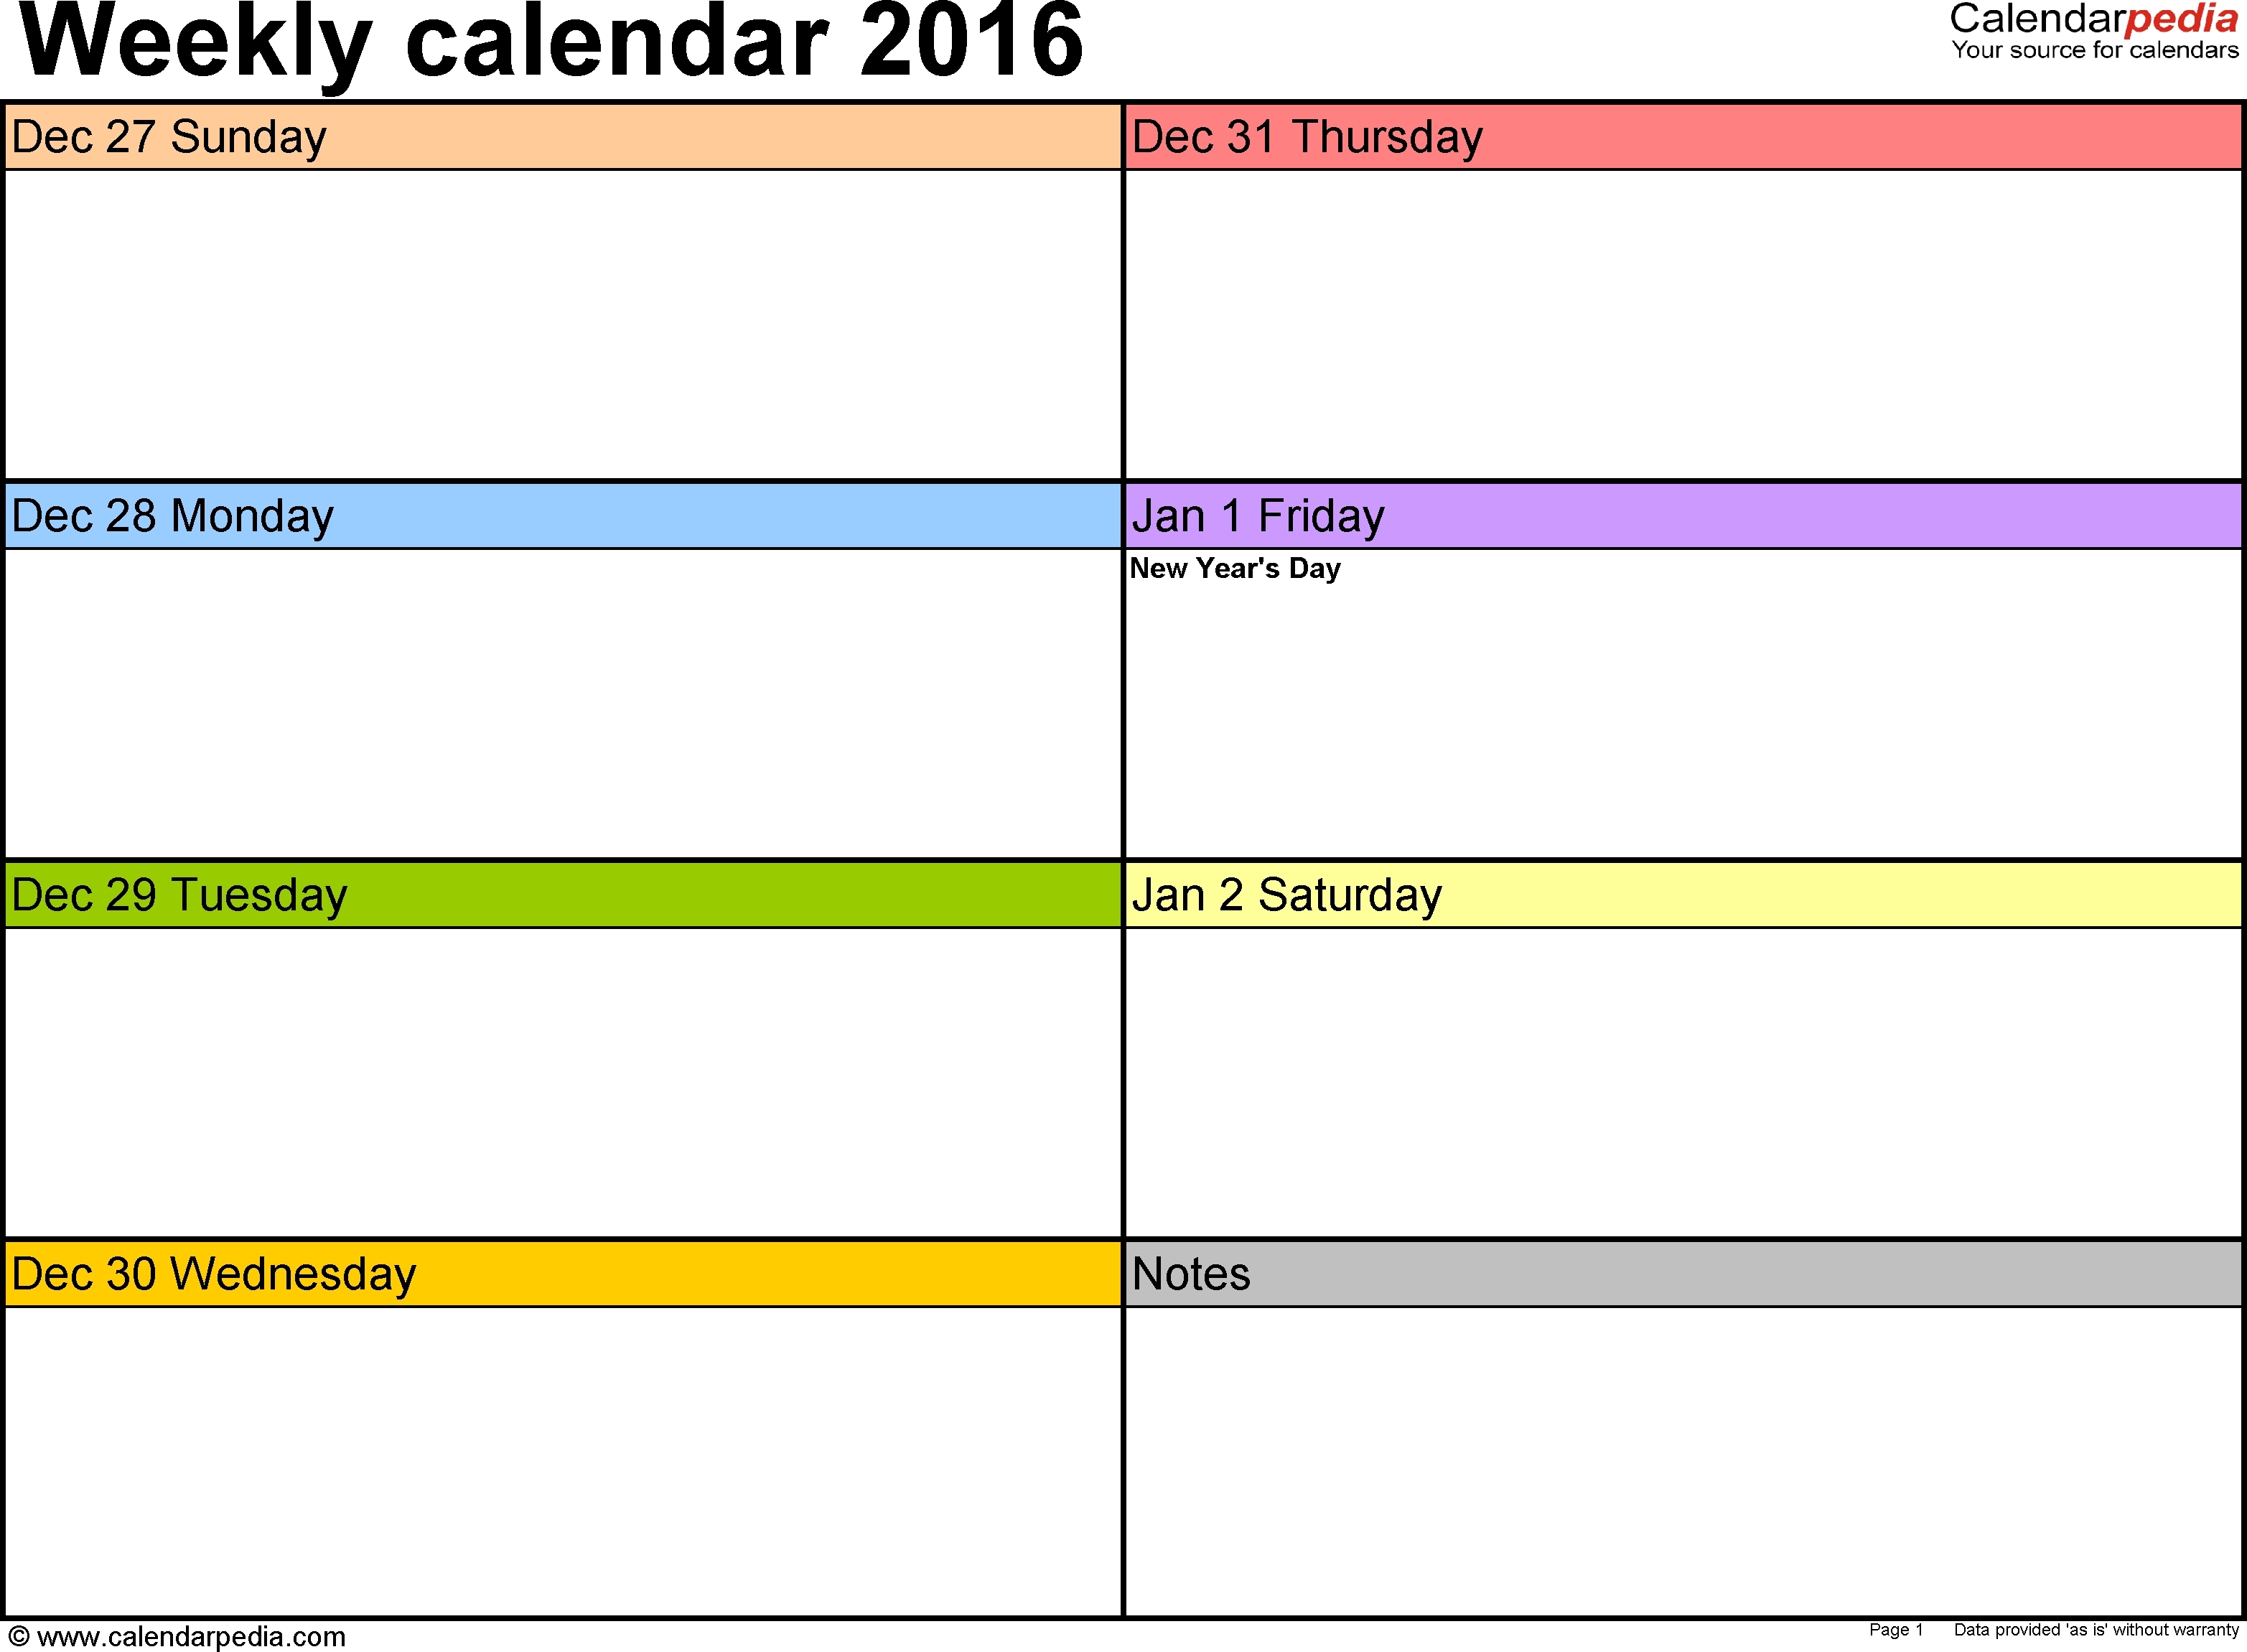 Printable Blank Weekly Calendars Templates - Radiodignidad regarding Printable Hour Time Slot Schedule